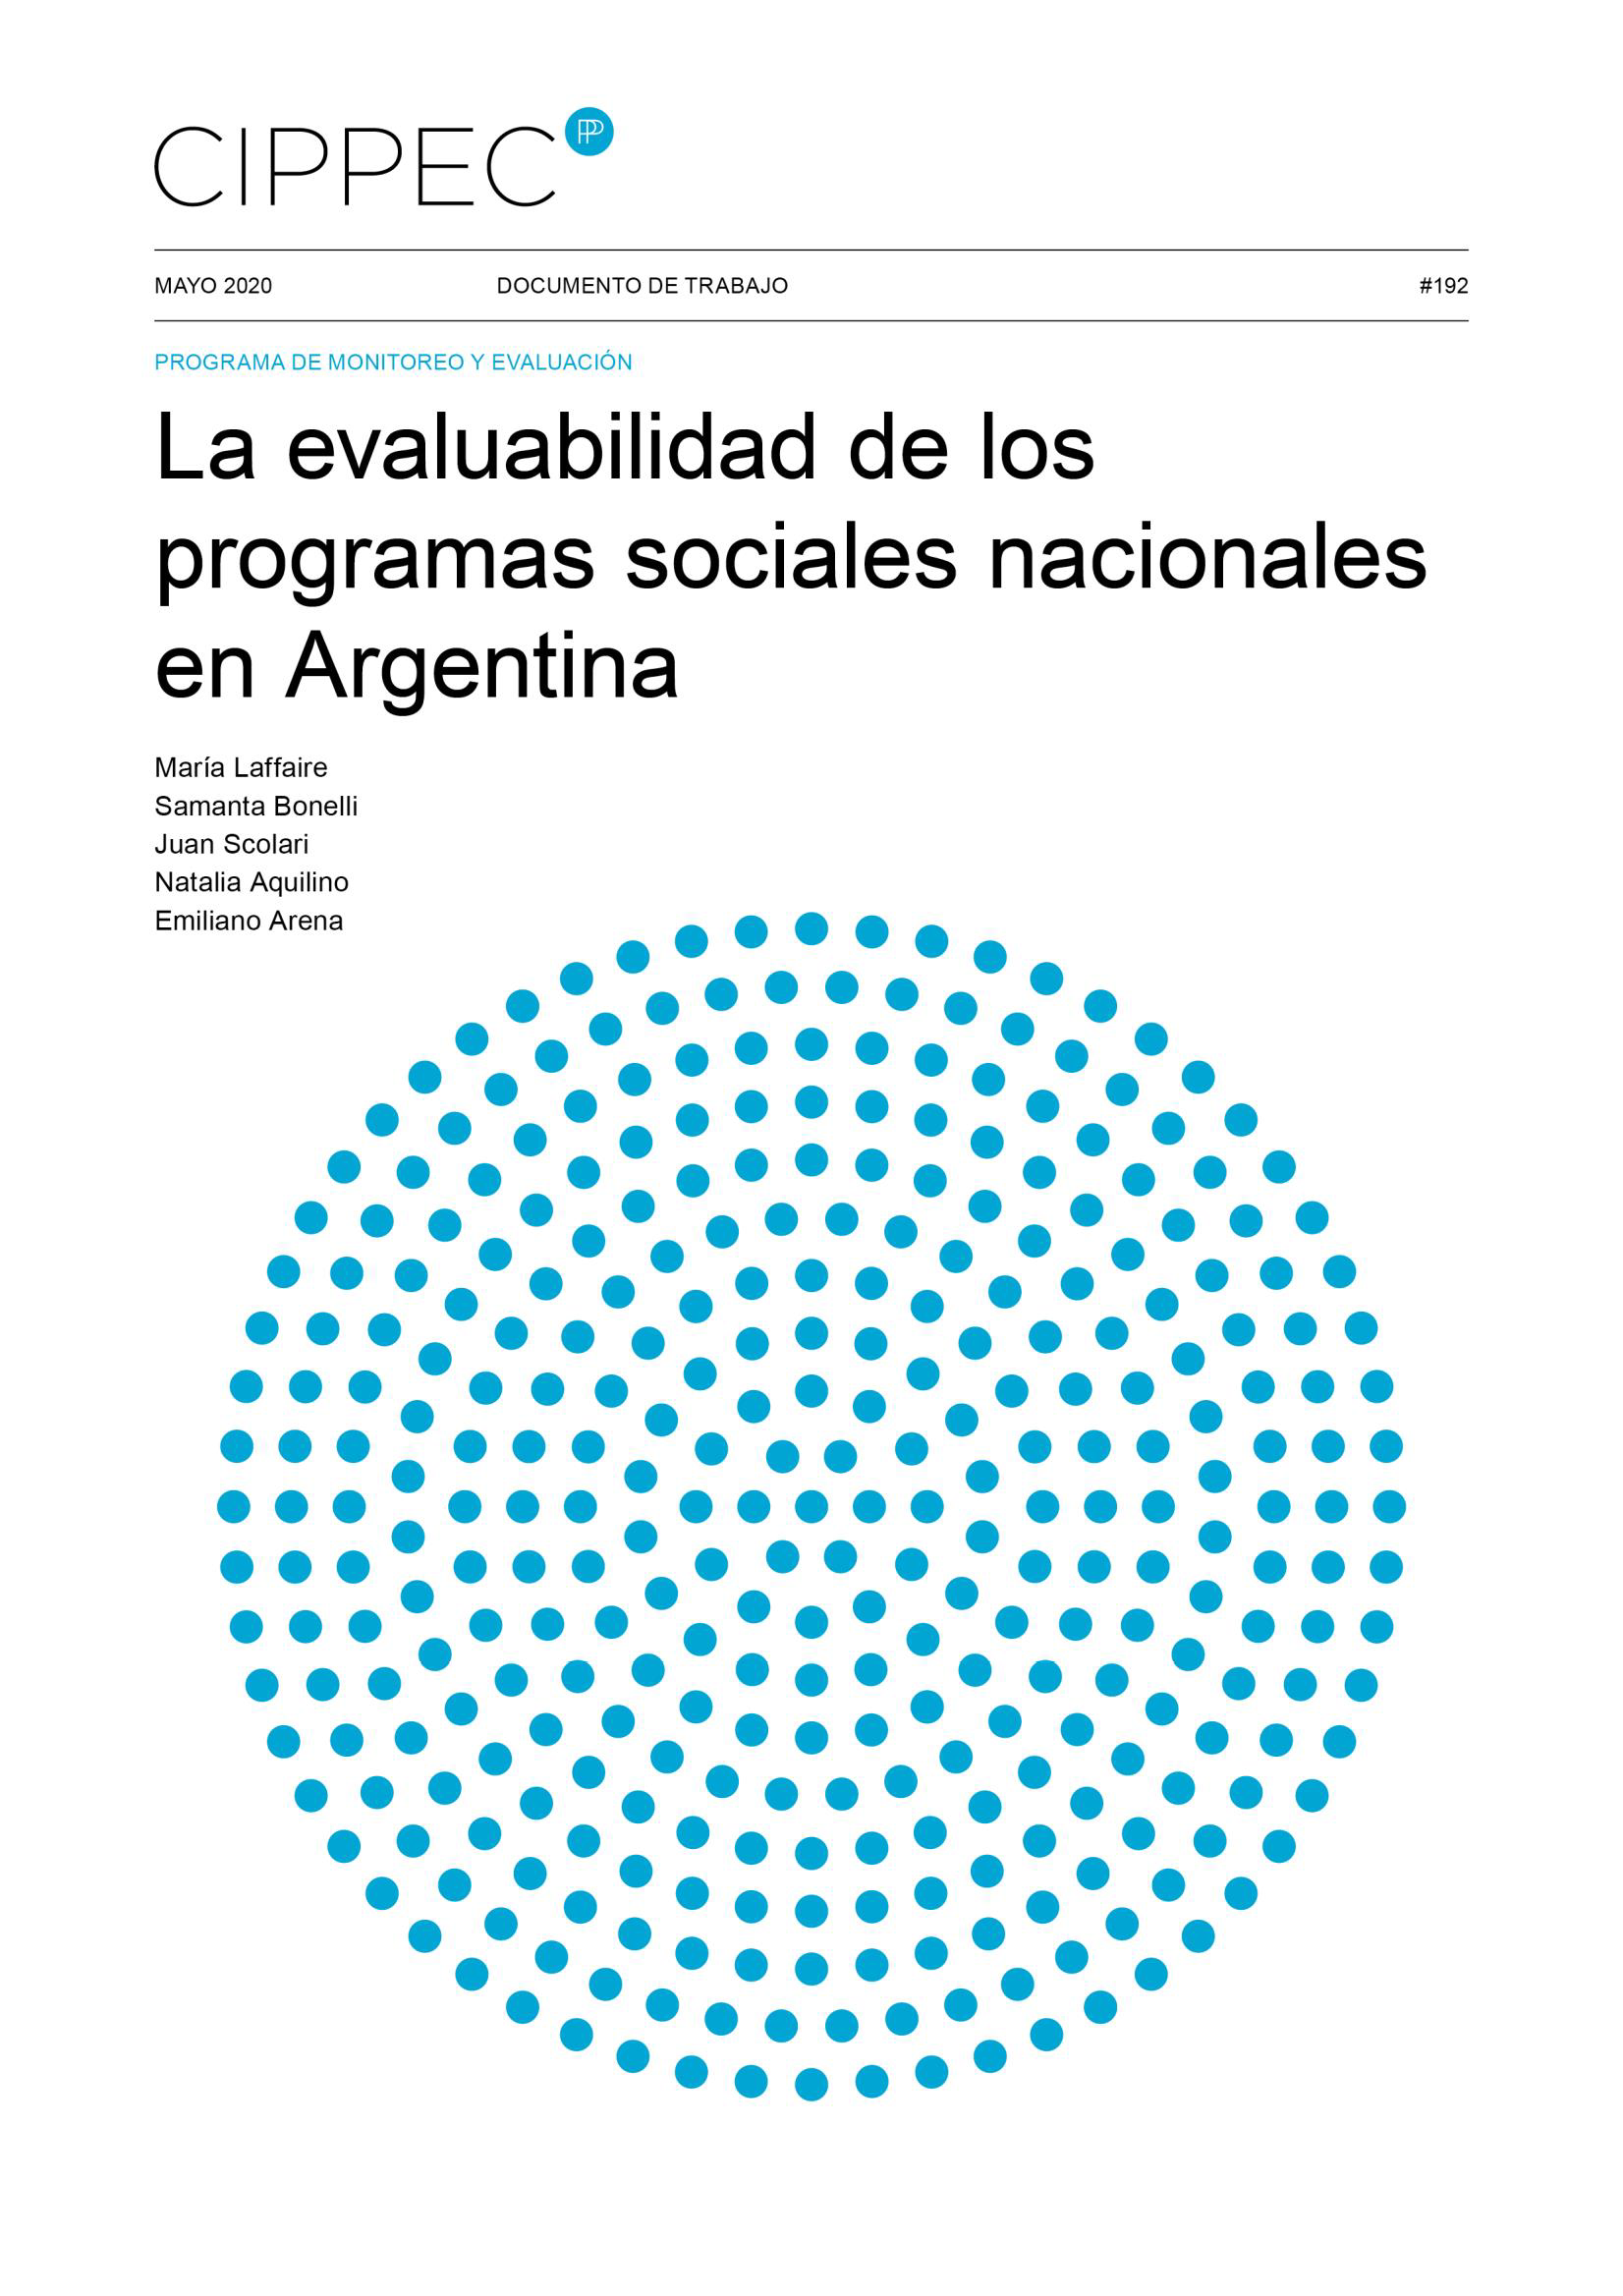 cippecEvaluabilidadProgramasArgentina